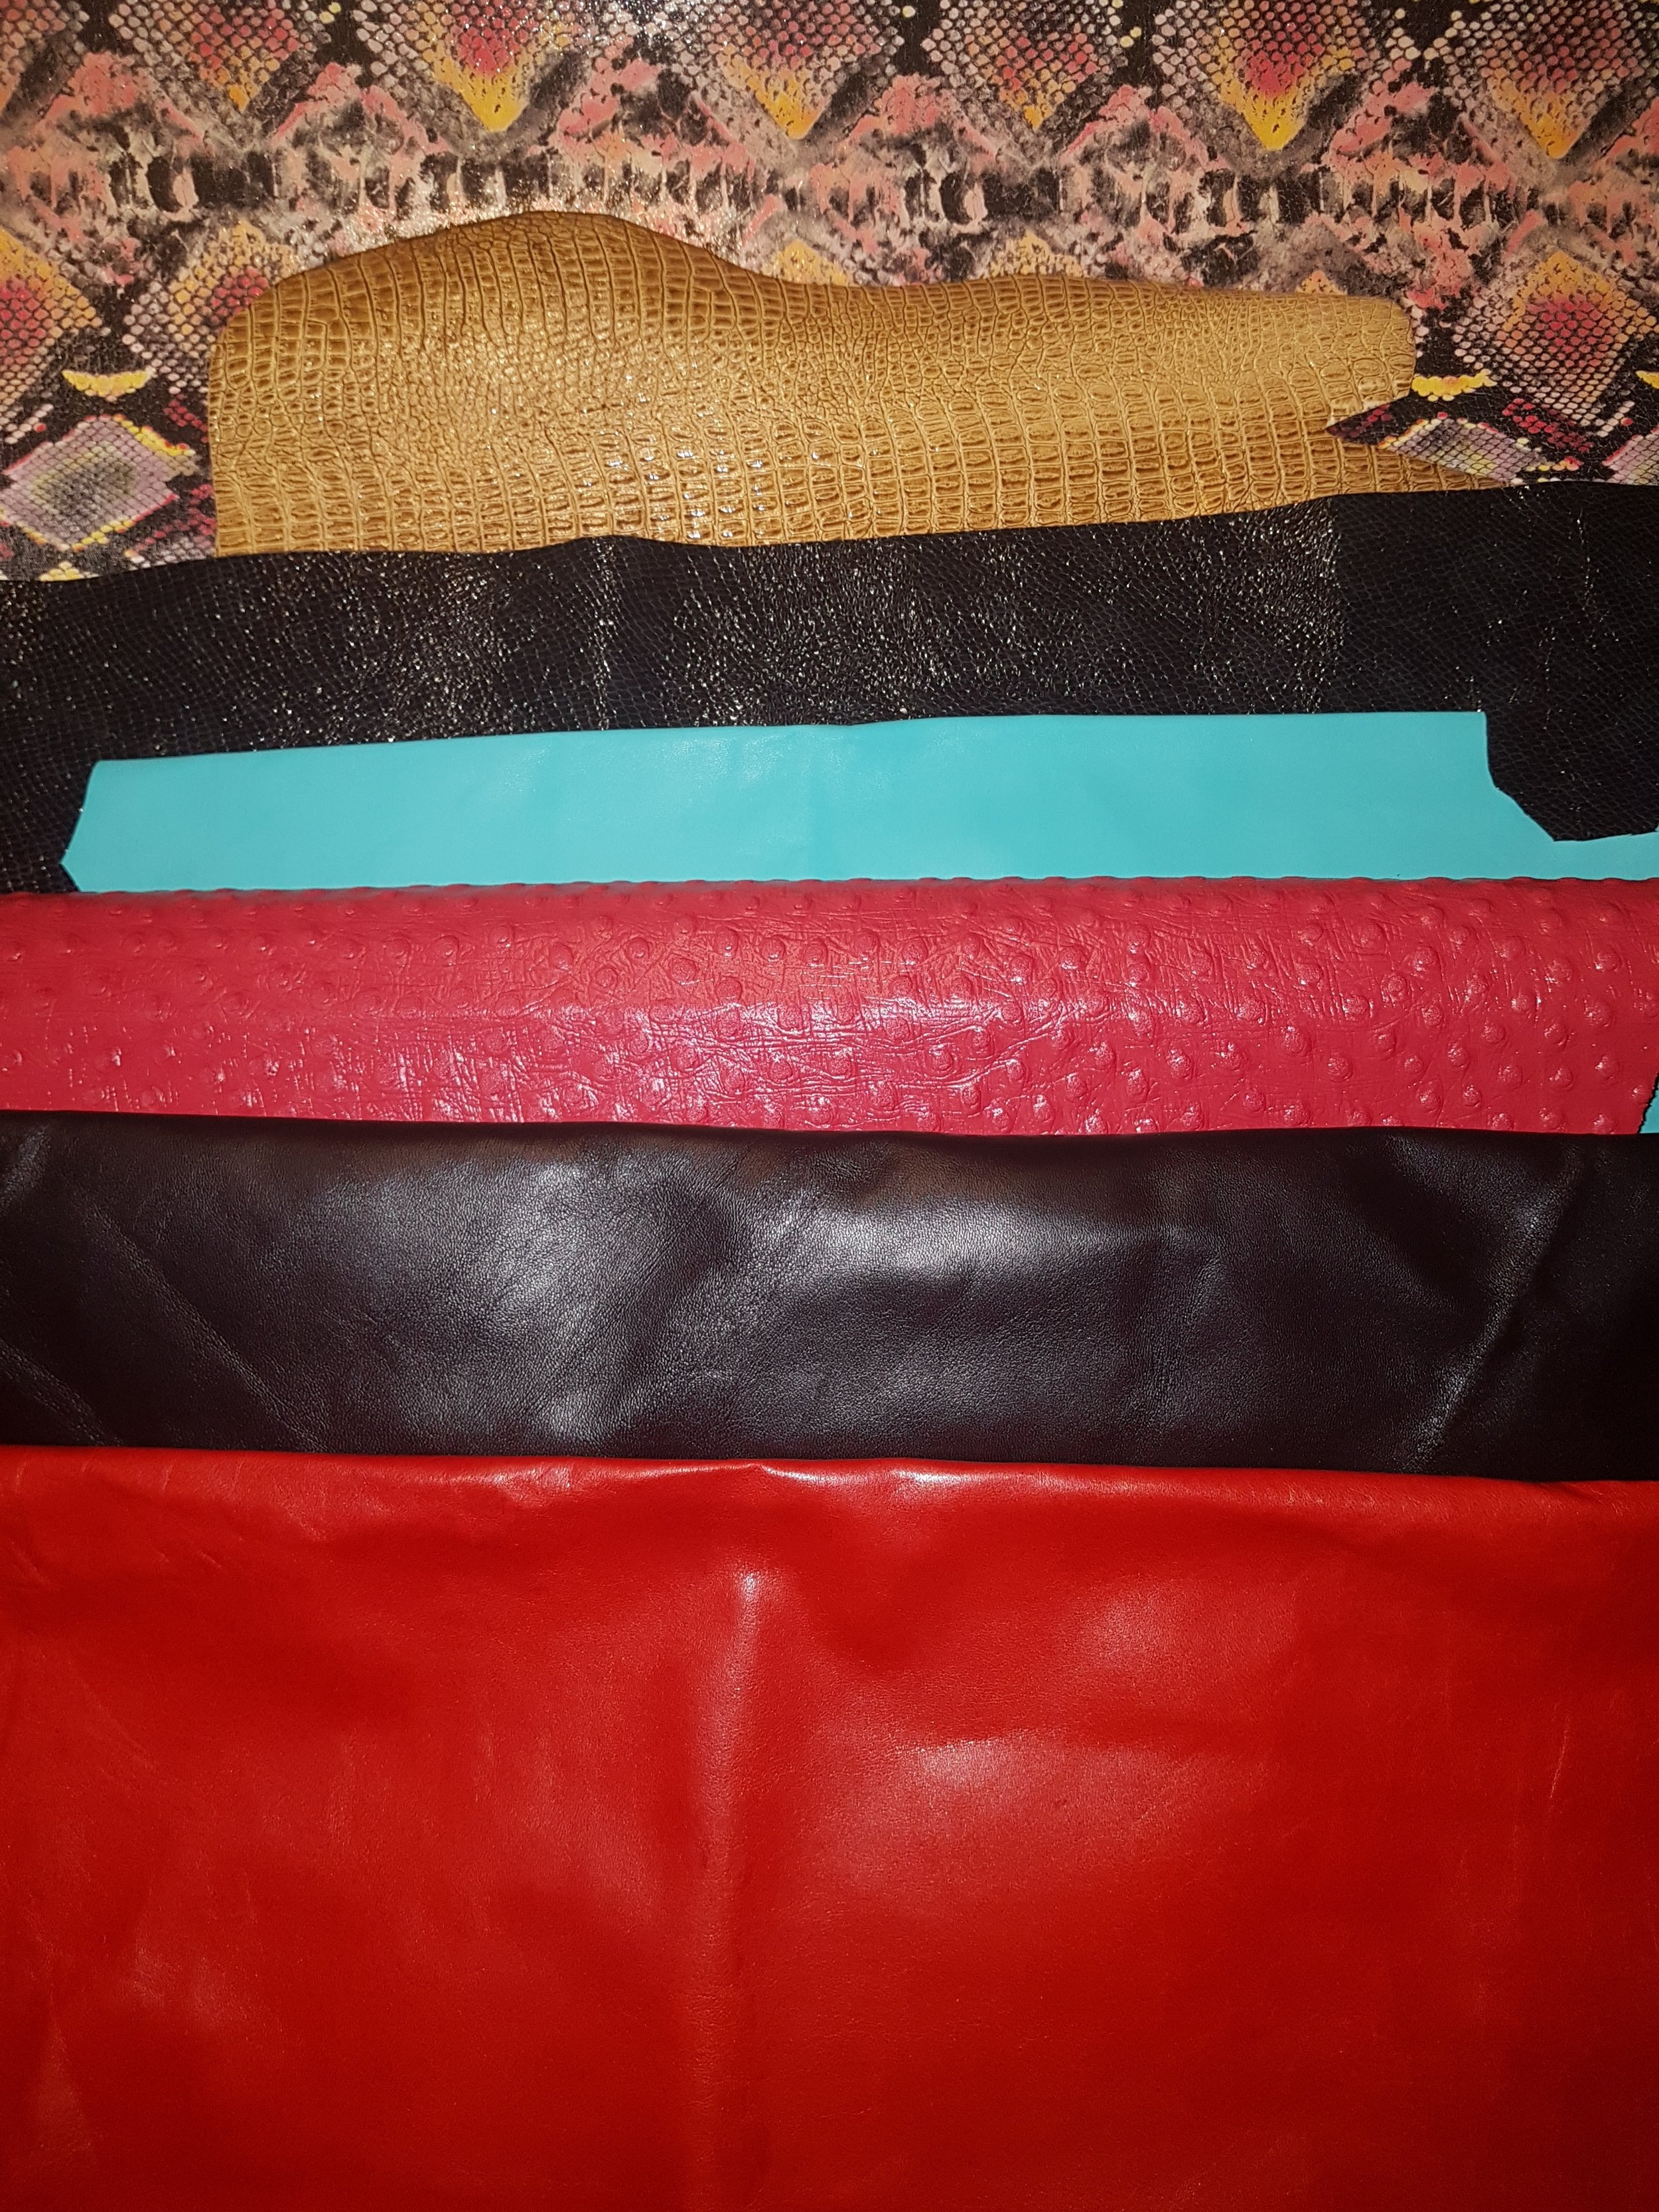 Batch8: - Various mediums and colors of leather. The black, red, turquoise are soft lamb skin leathers. There is a red Ostrich skin embossed leather and a gold alligator embossed leather. How about being bold and try a snake skin patterned (Cow hide) tack set?